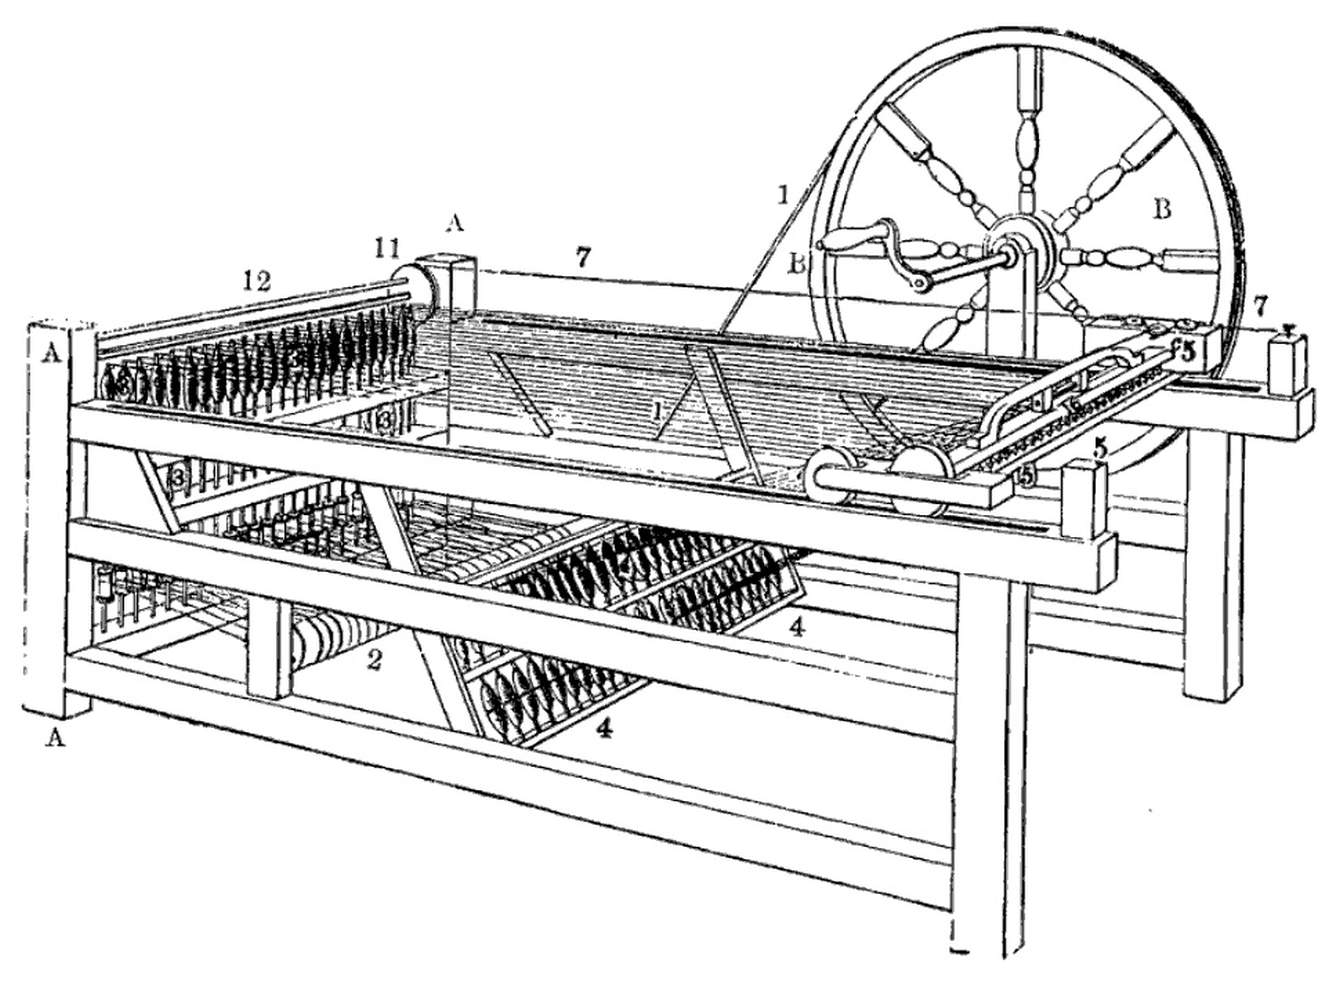 Automatisierung durch Spinning Jenny